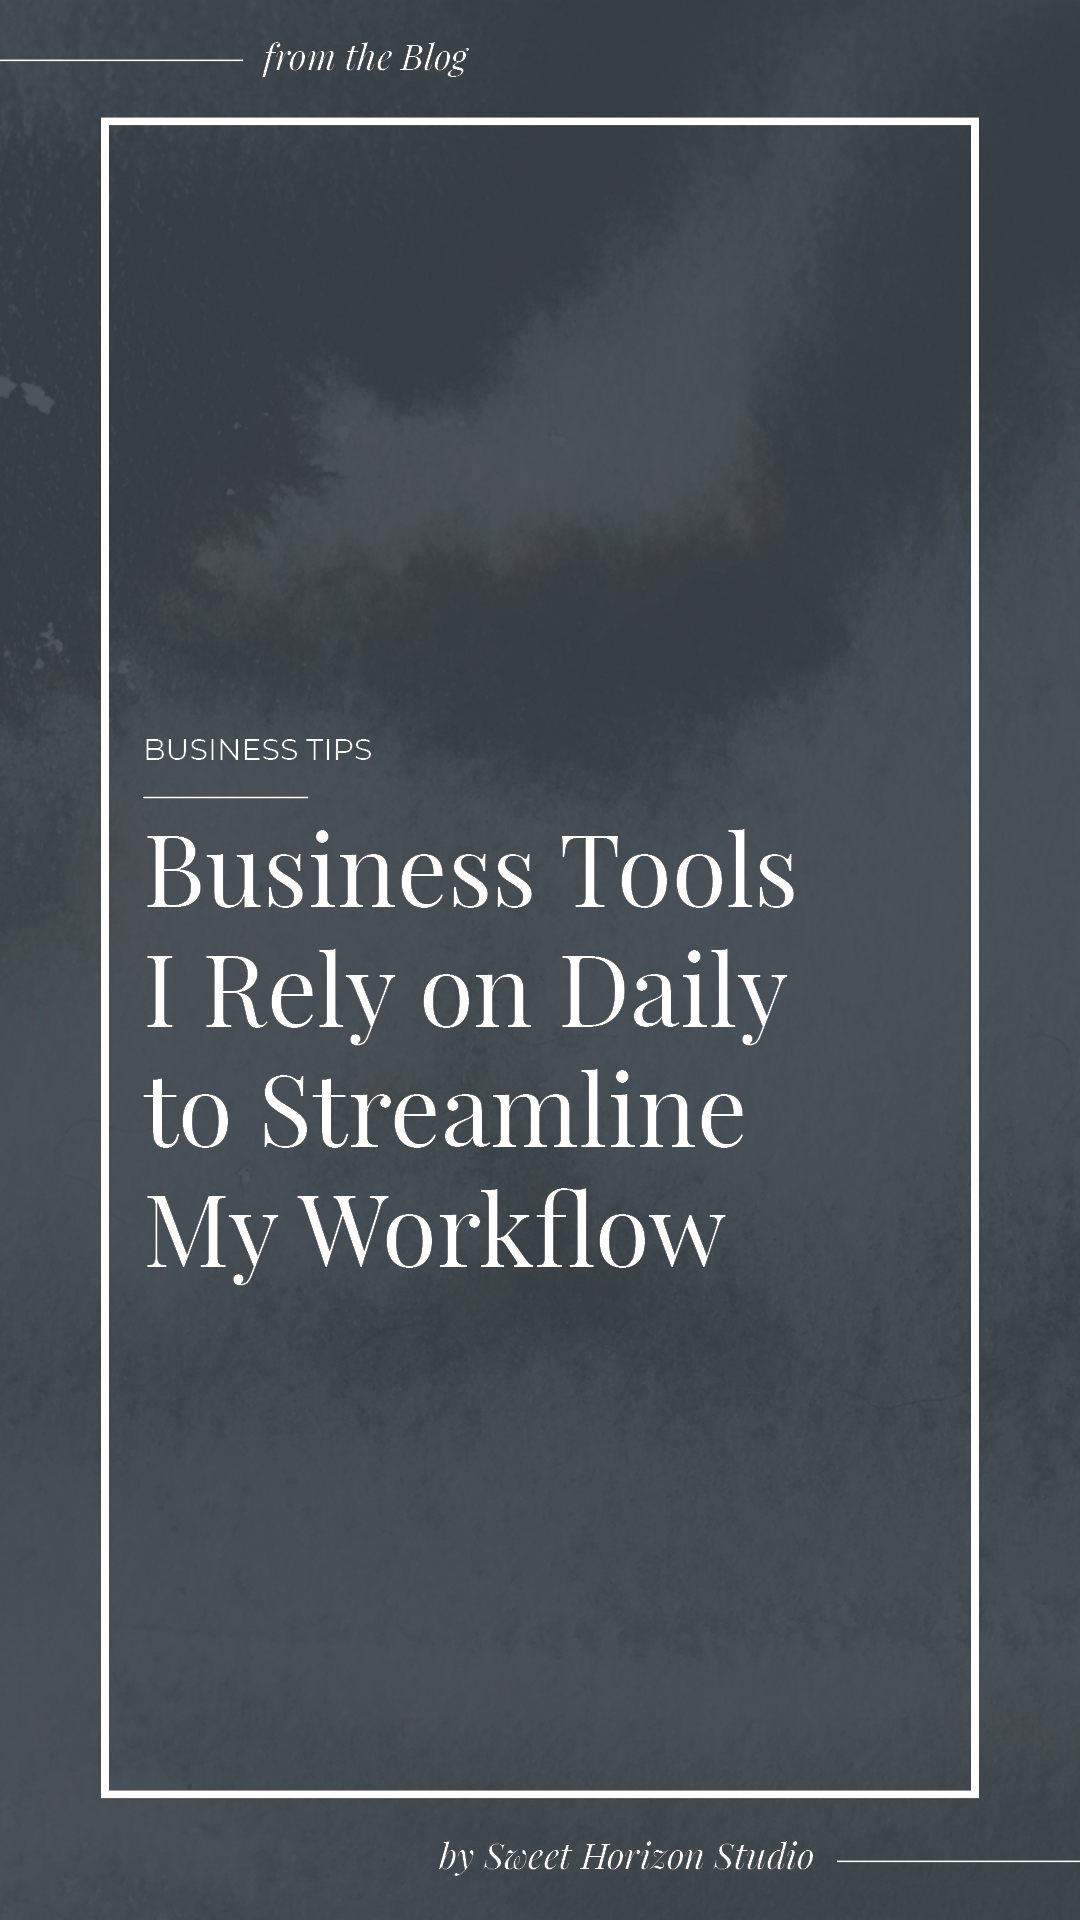 Business Tools I Rely on Daily to Streamline My Workflow from www.sweethorizonblog.com